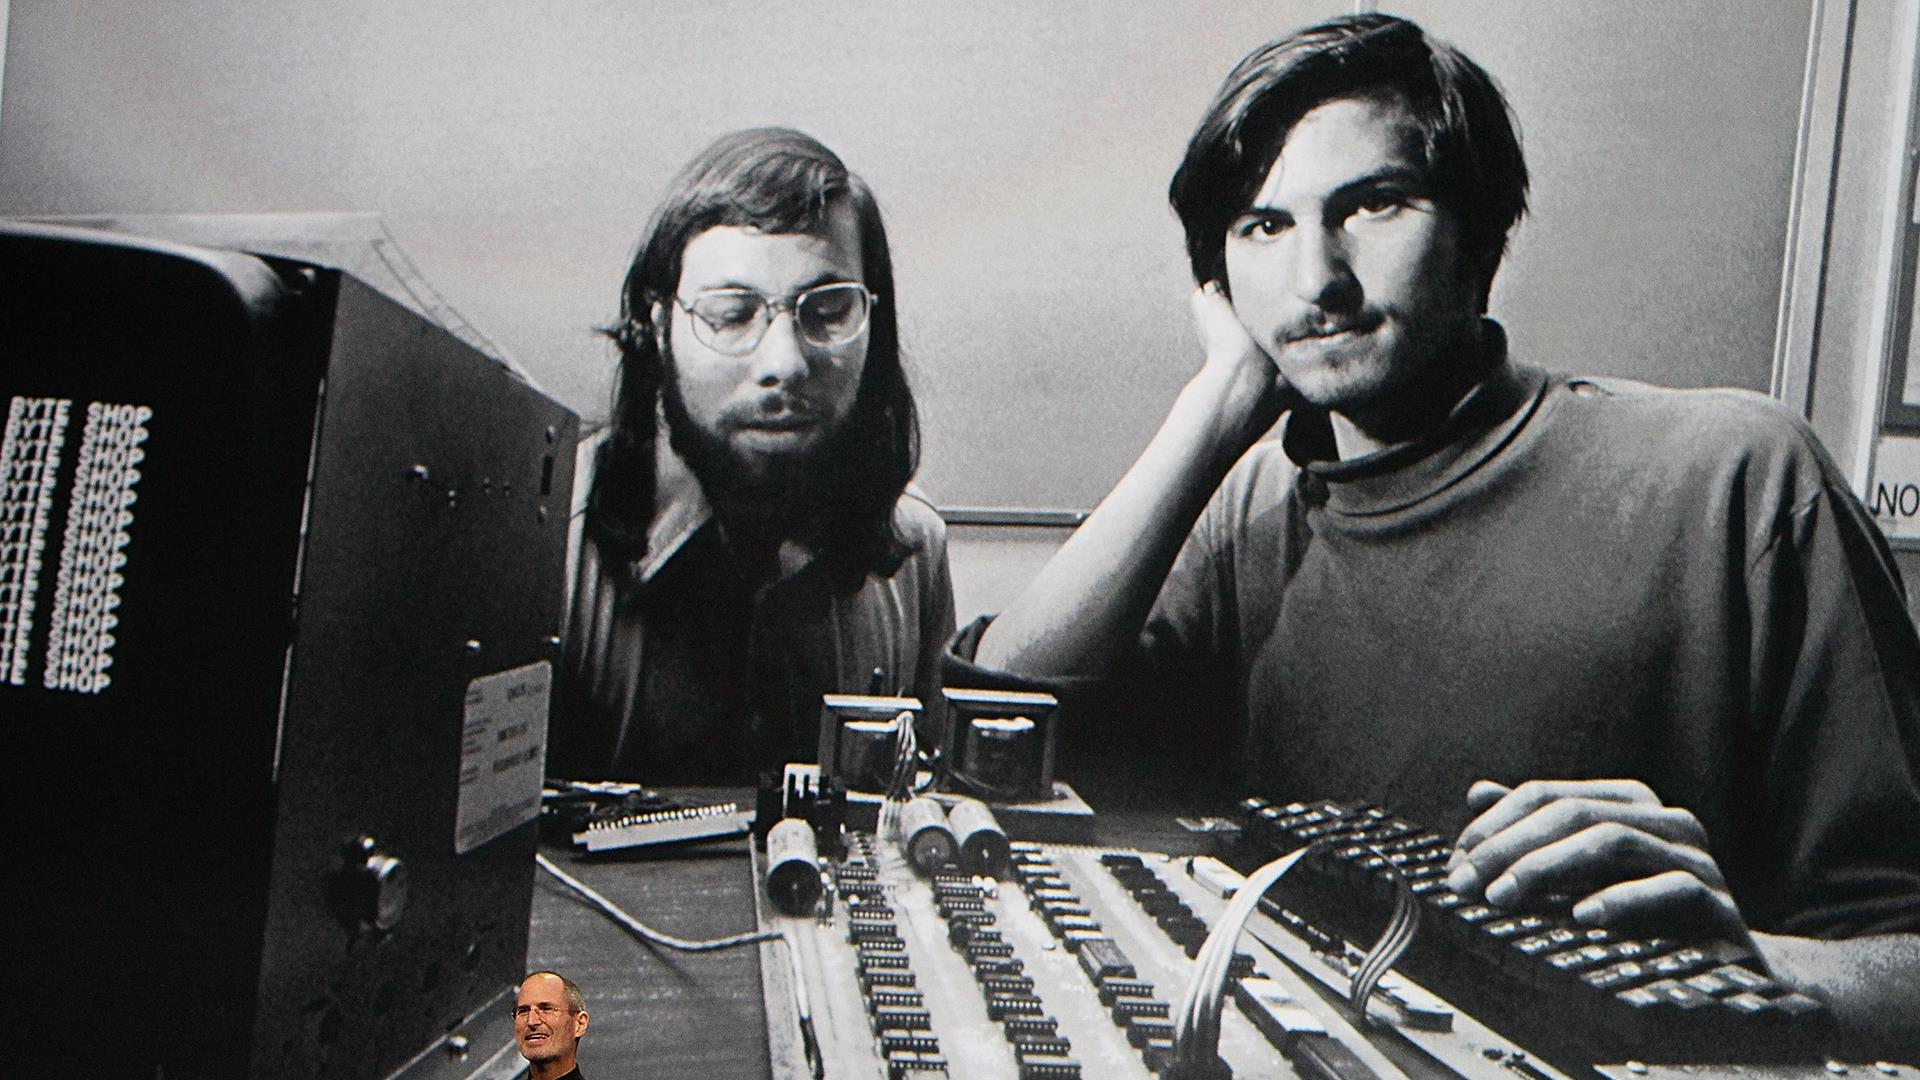 Flashback: Peek Inside Steve Jobs First PC